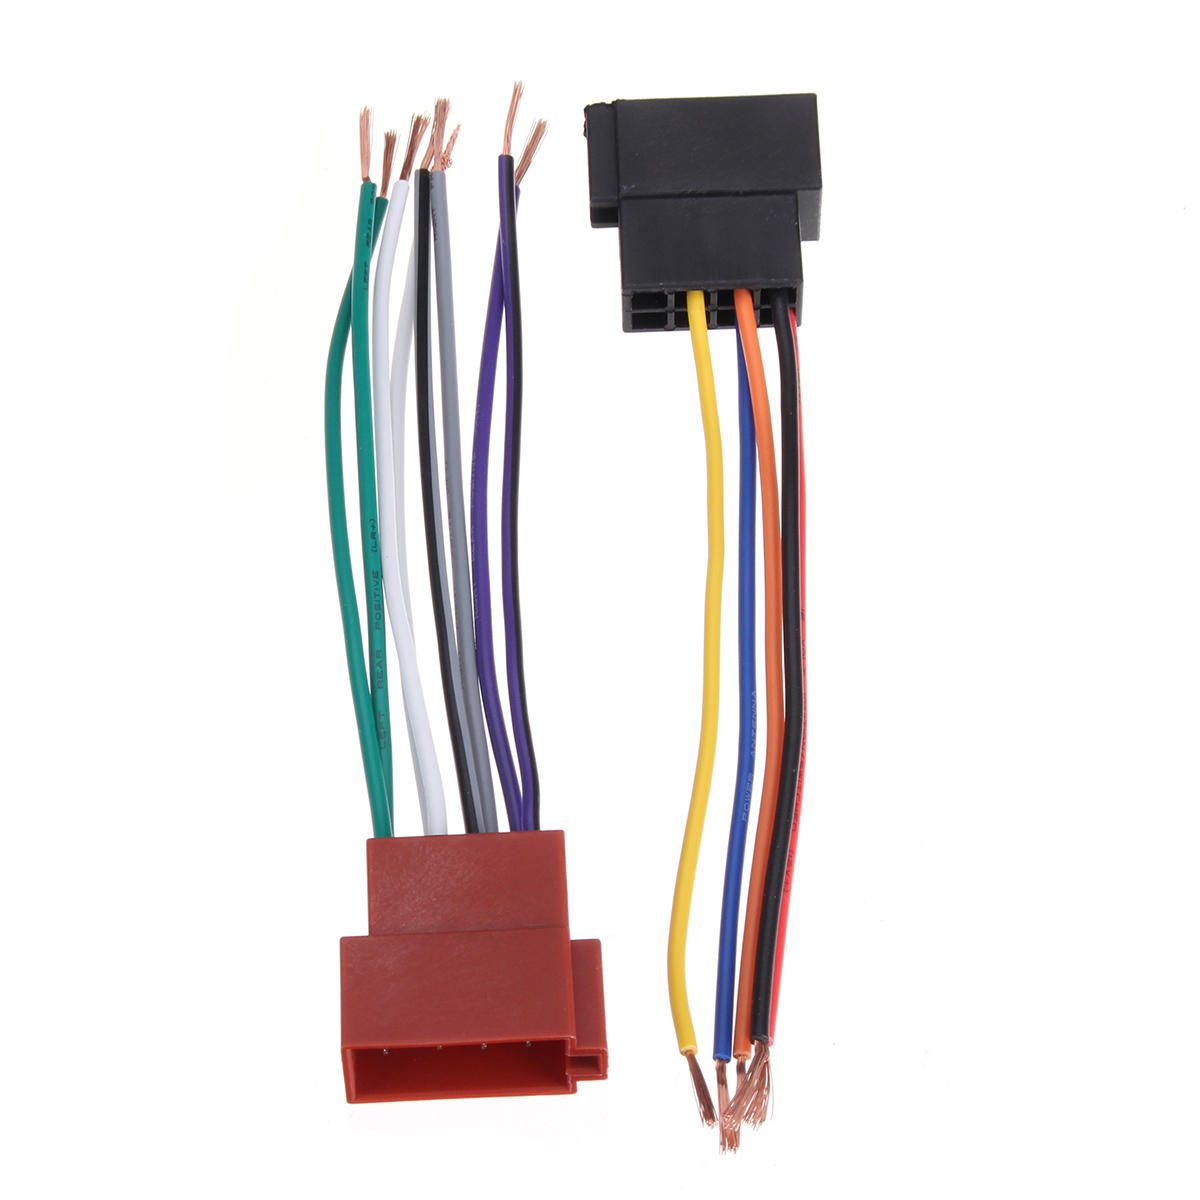 hight resolution of universal car stereo female iso radio plug adapter wiring cable stereo harness cod